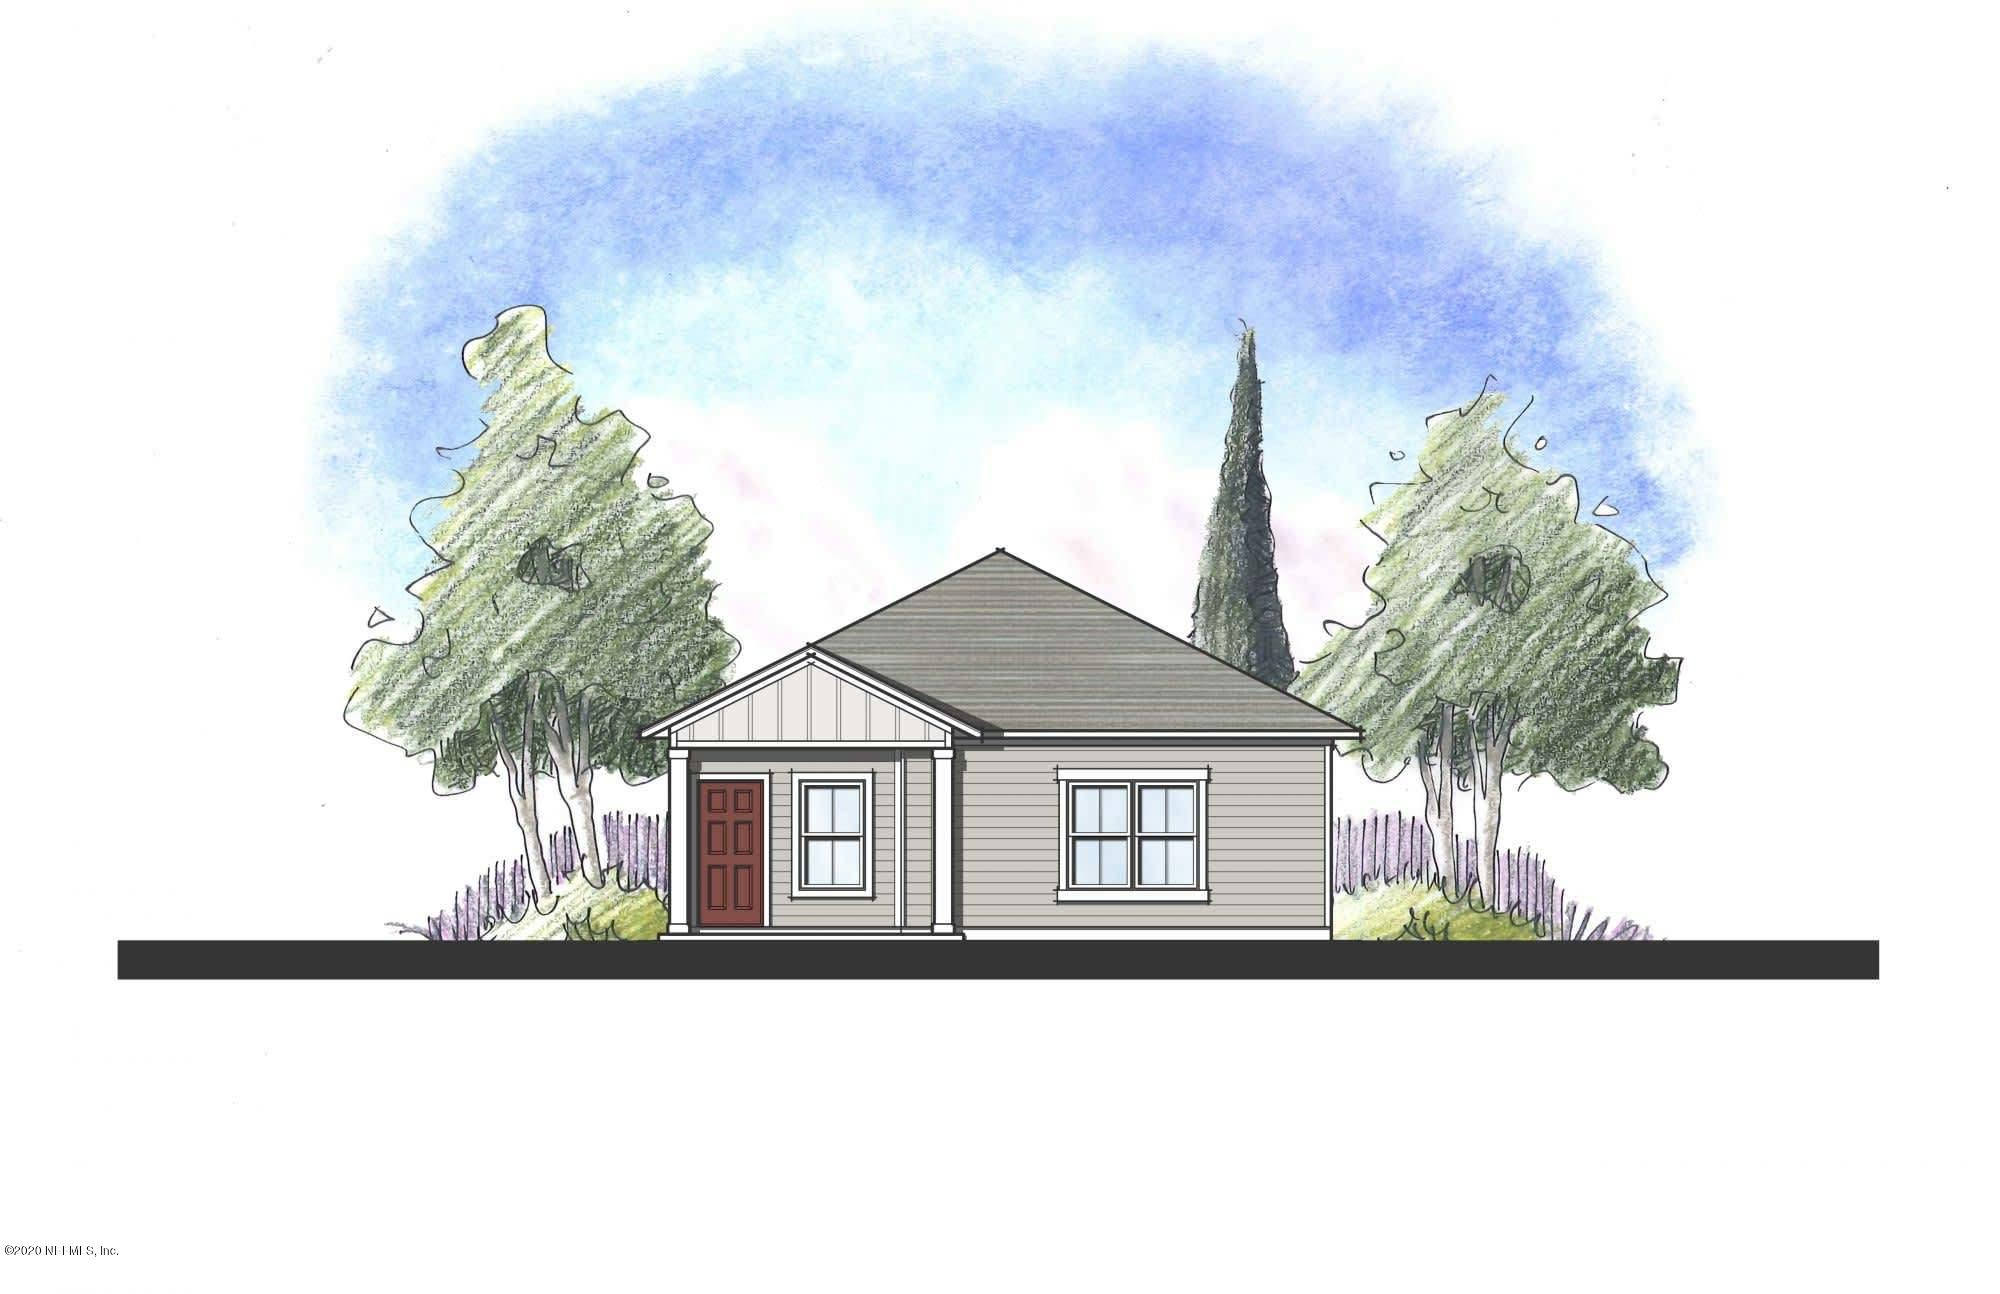 234 DAYDREAM, YULEE, FLORIDA 32097, 3 Bedrooms Bedrooms, ,2 BathroomsBathrooms,Residential,For sale,DAYDREAM,1080560